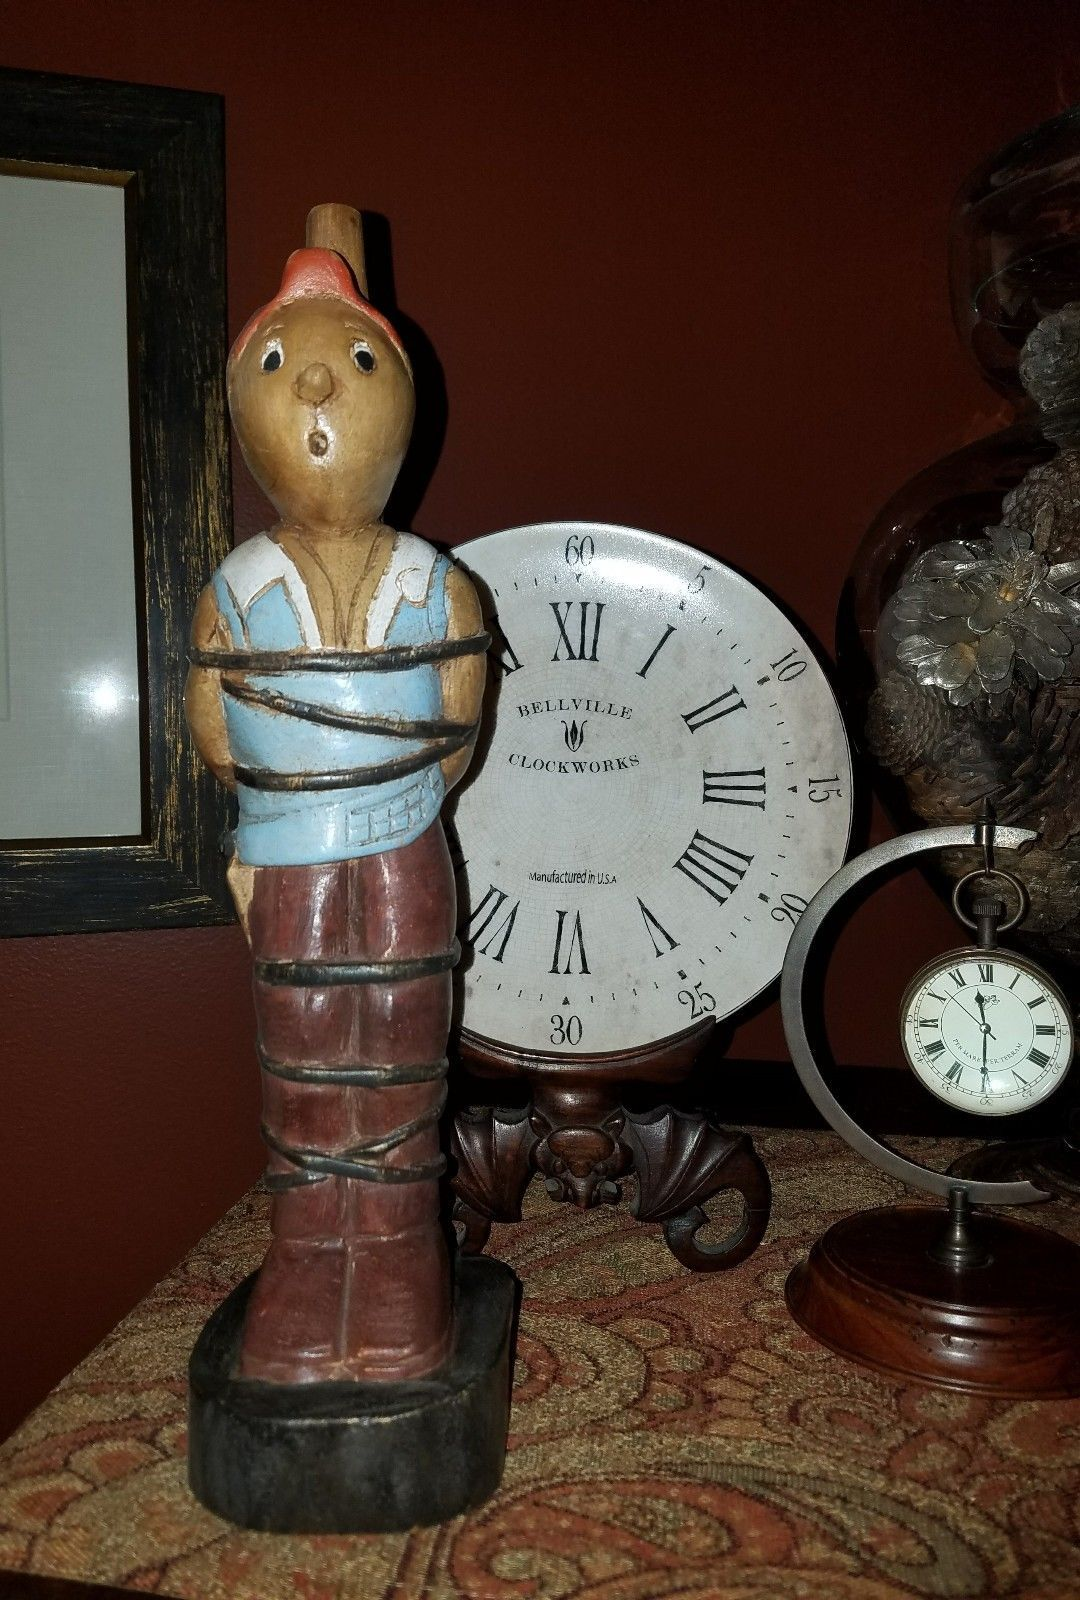 Tintin Tied Up Carved Wooden Figure Vintage Games And